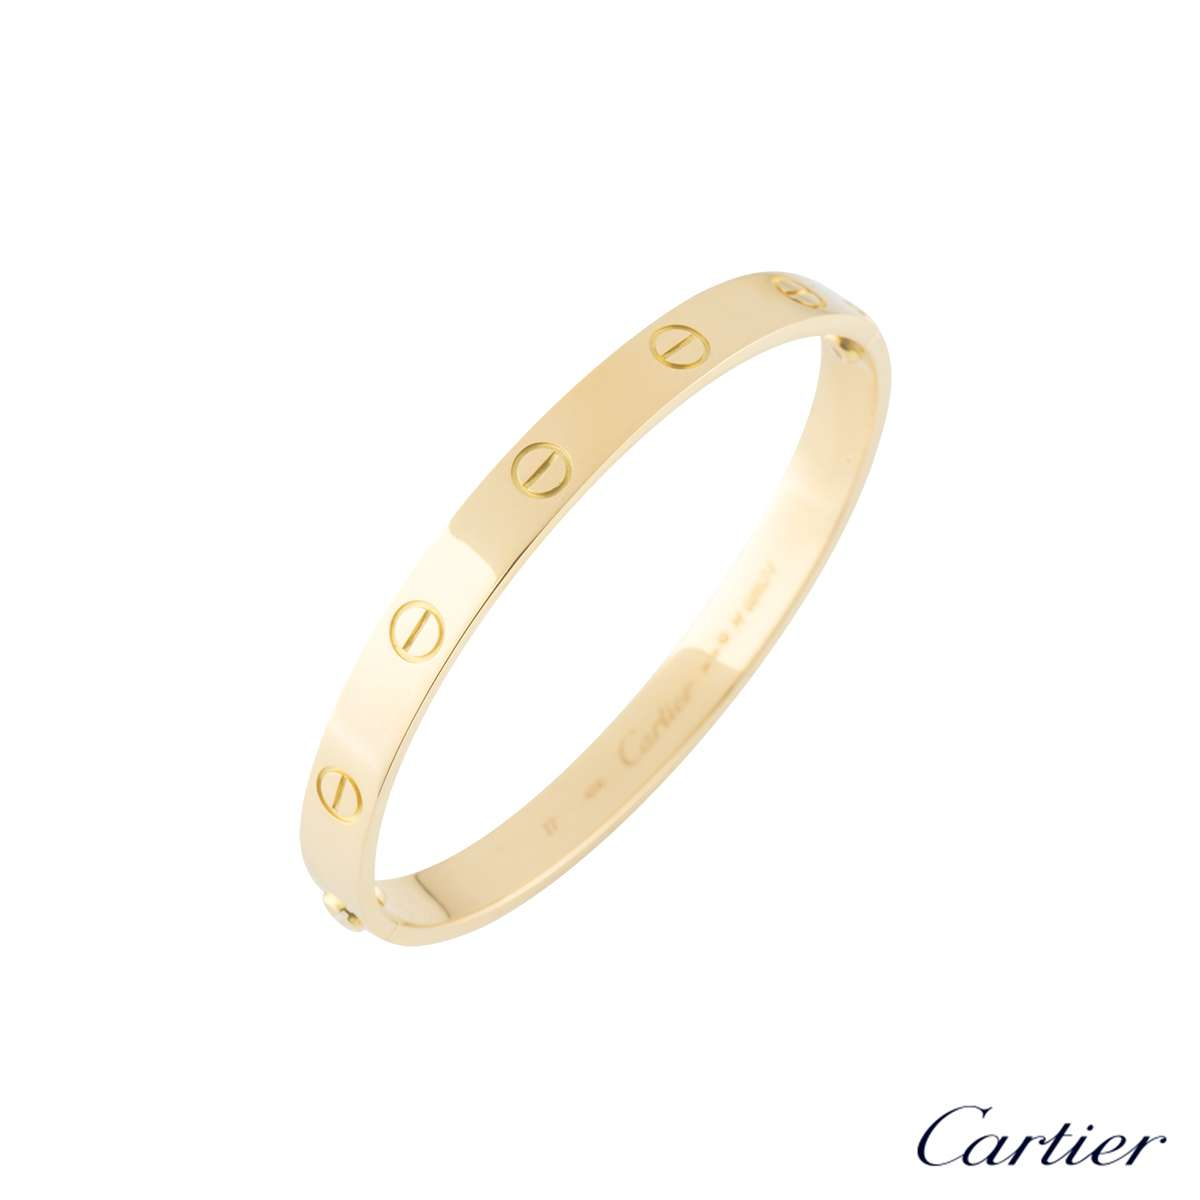 Cartier Yellow Gold Love Bracelet Size 21 B6035521